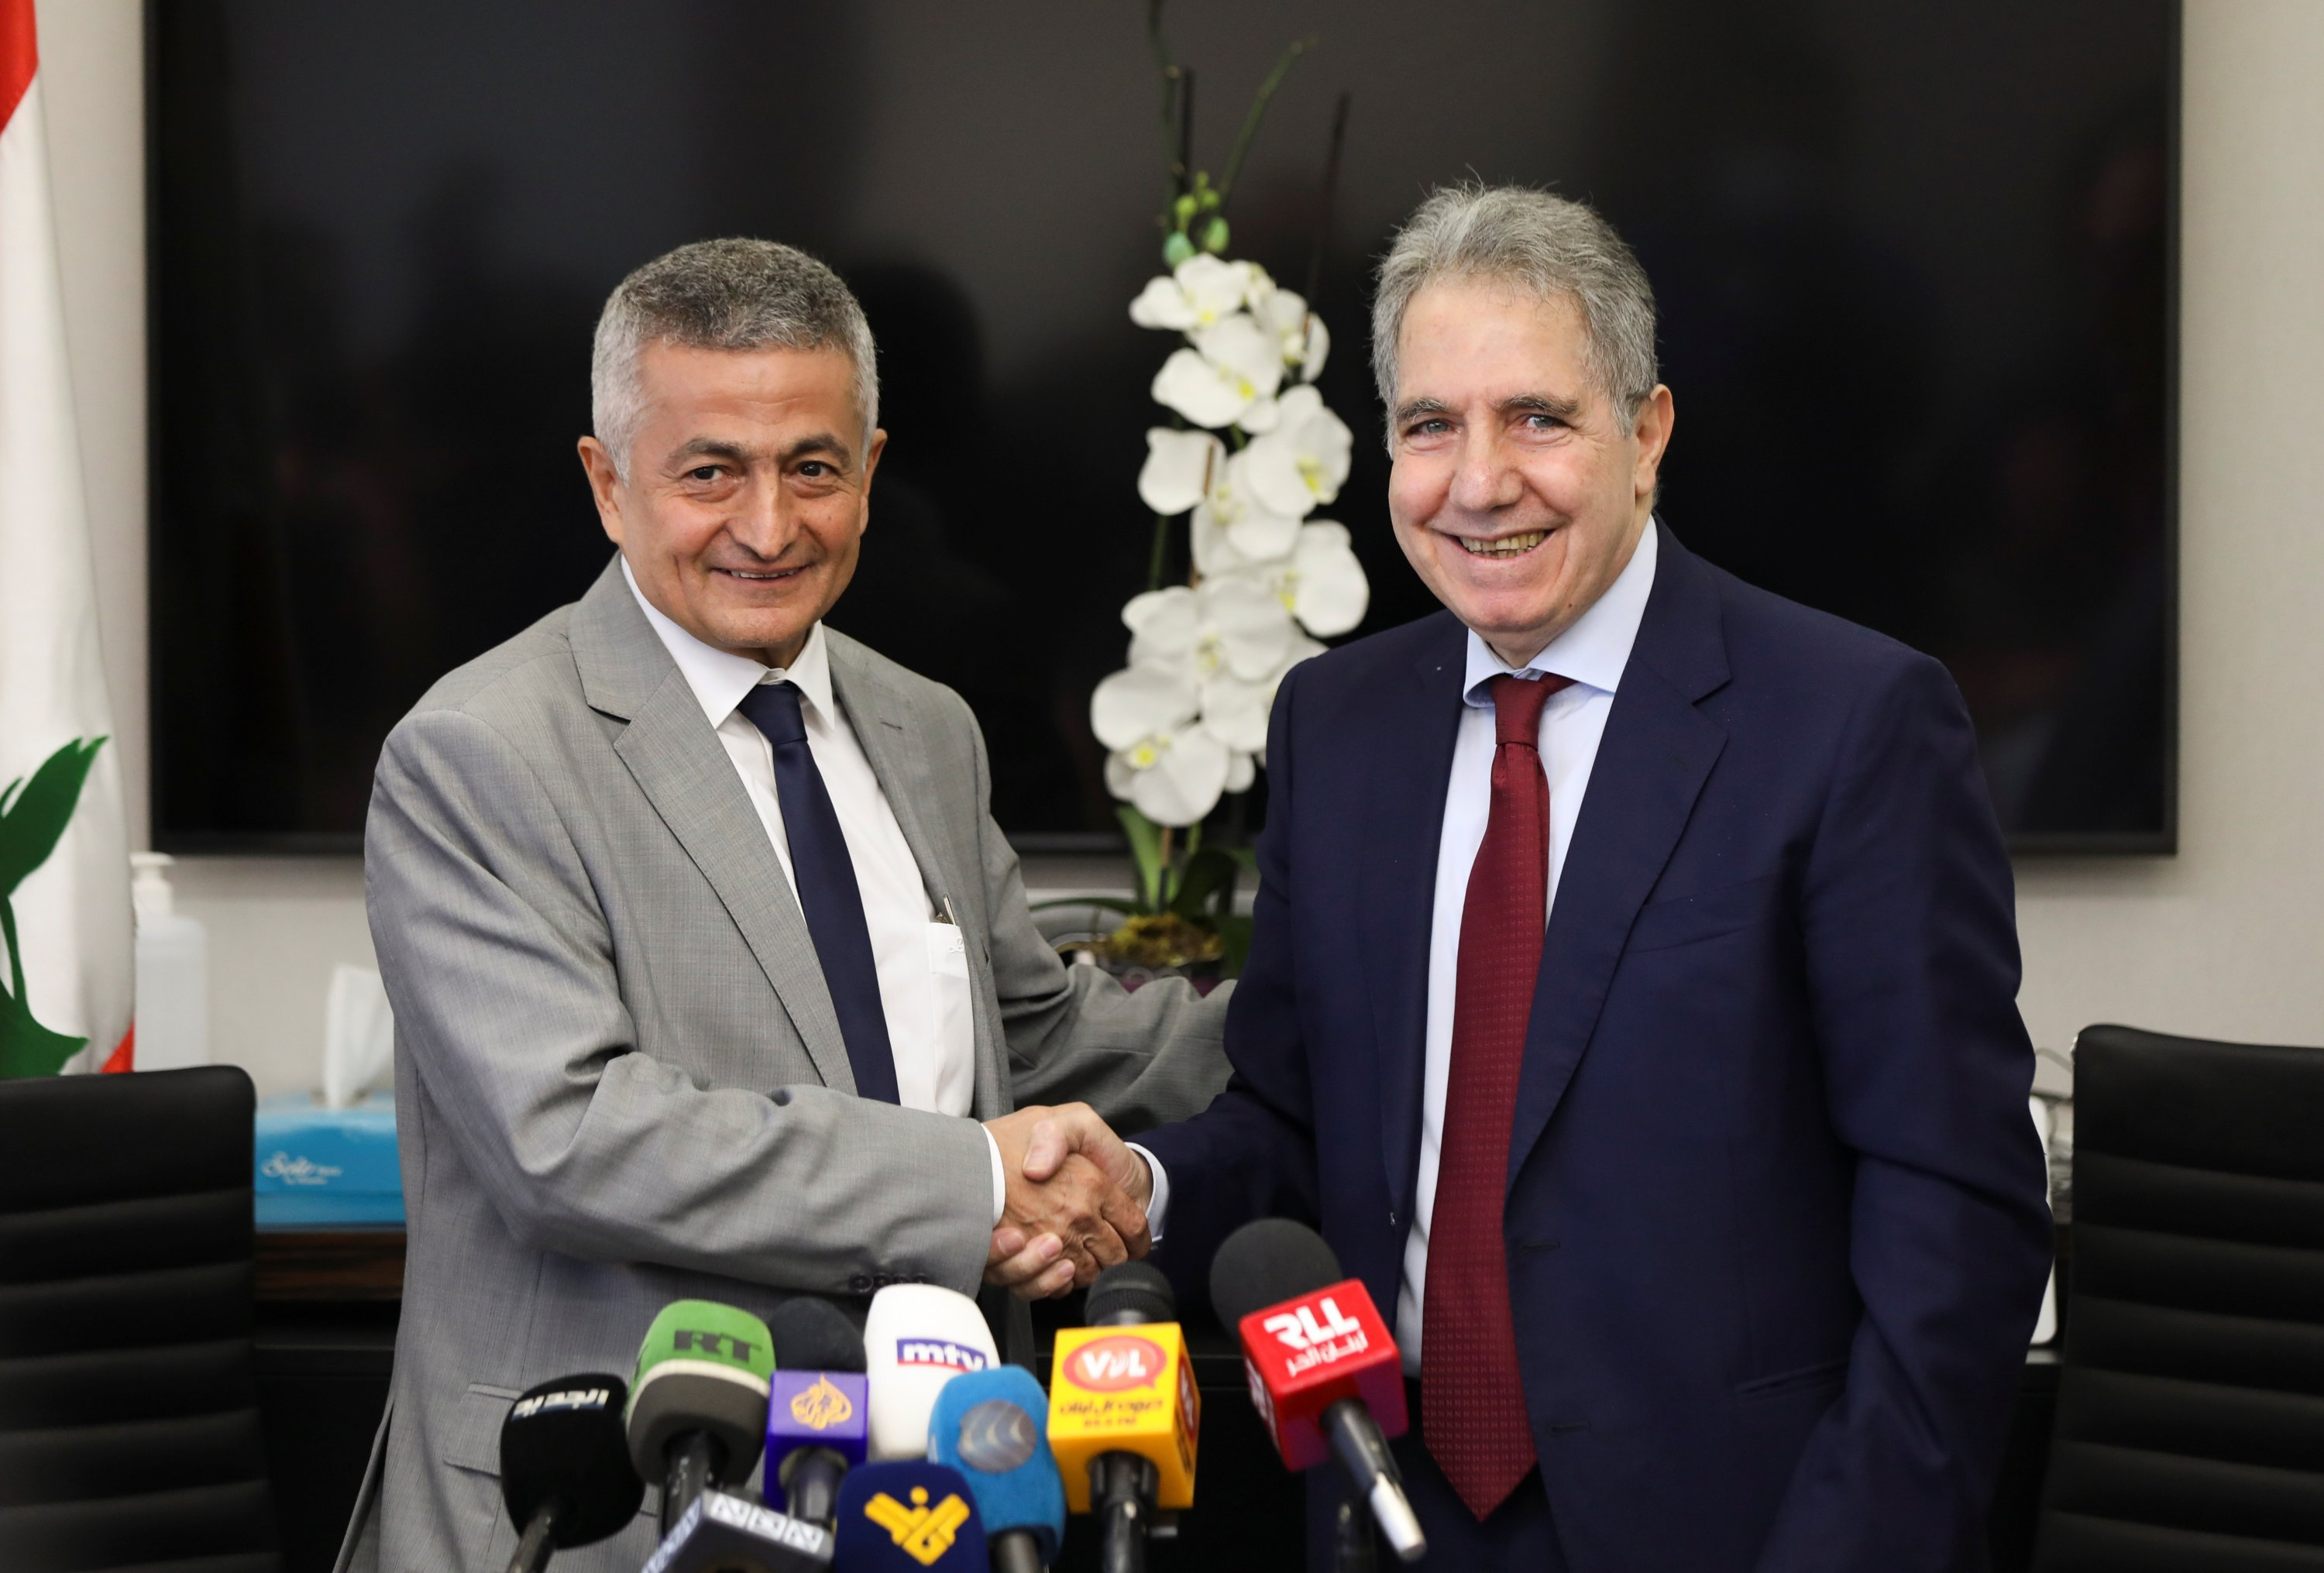 Lebanon's outgoing Finance Minister Ghazi Wazni shakes hands with the newly appointed Finance Minister Youssef Khalil during a handover ceremony in Beirut, Lebanon, Sept. 14, 2021. (REUTERS Photo)